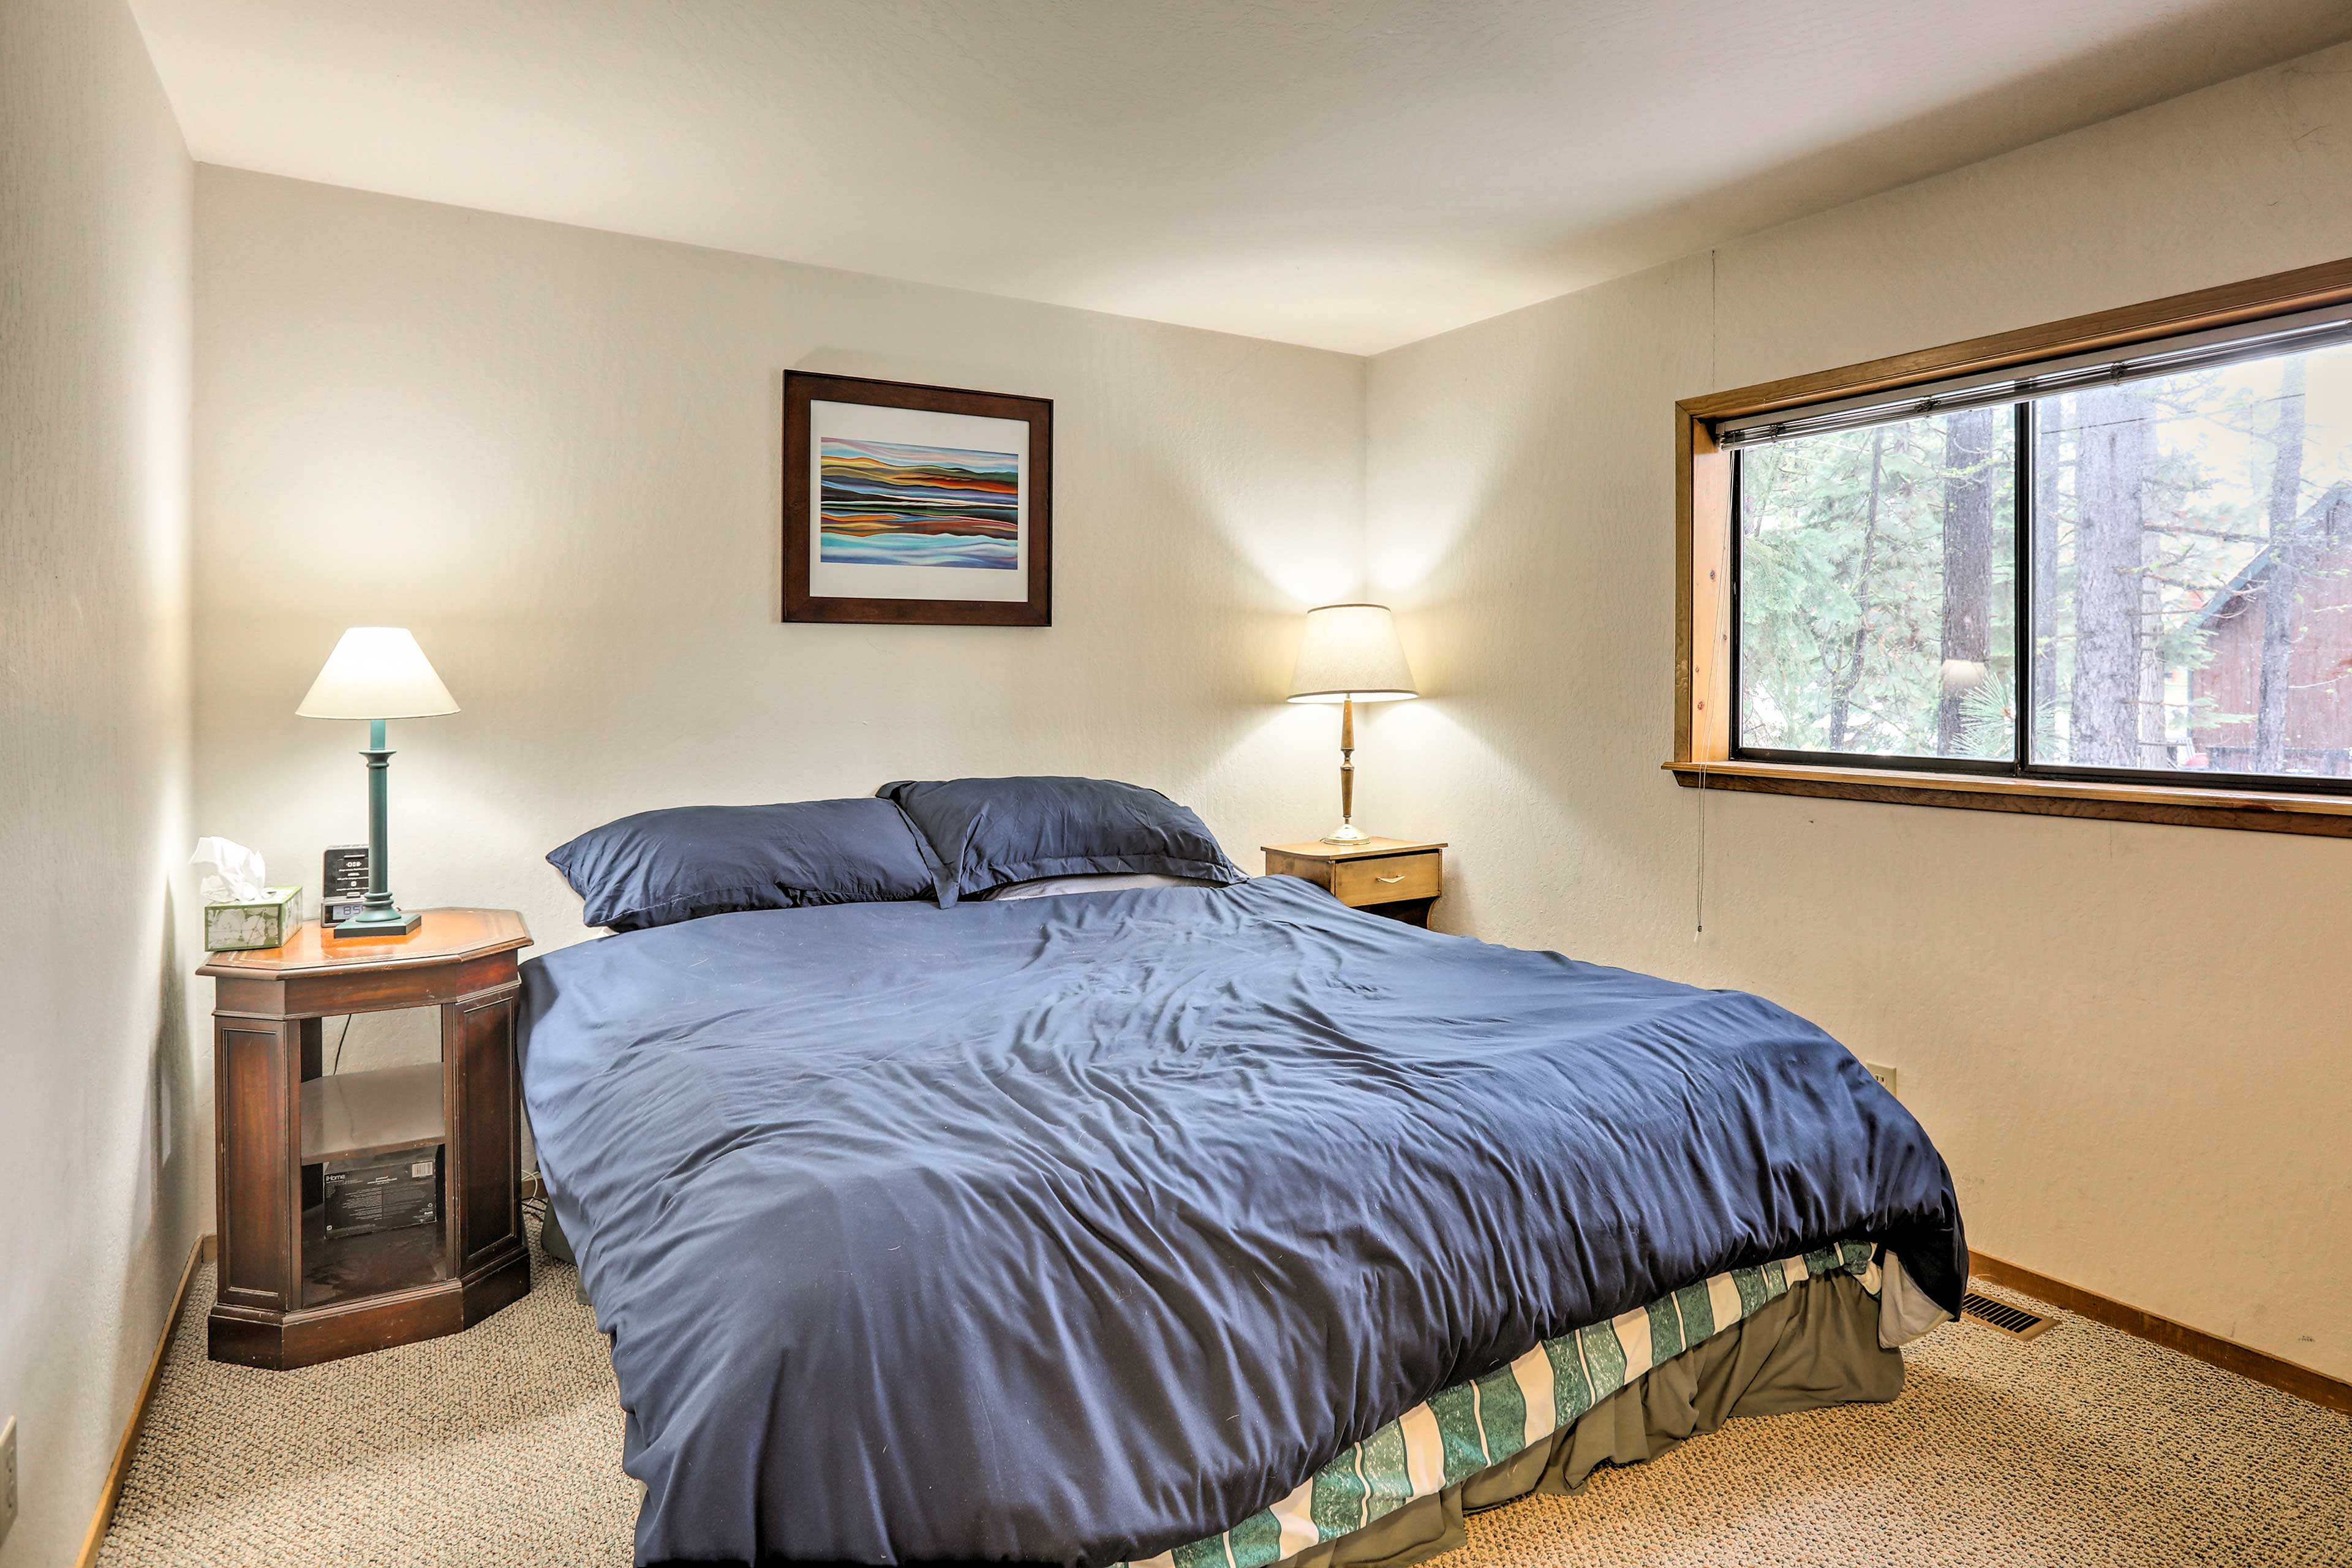 Peaceful slumbers await 2 guests in the light & airy third bedroom.